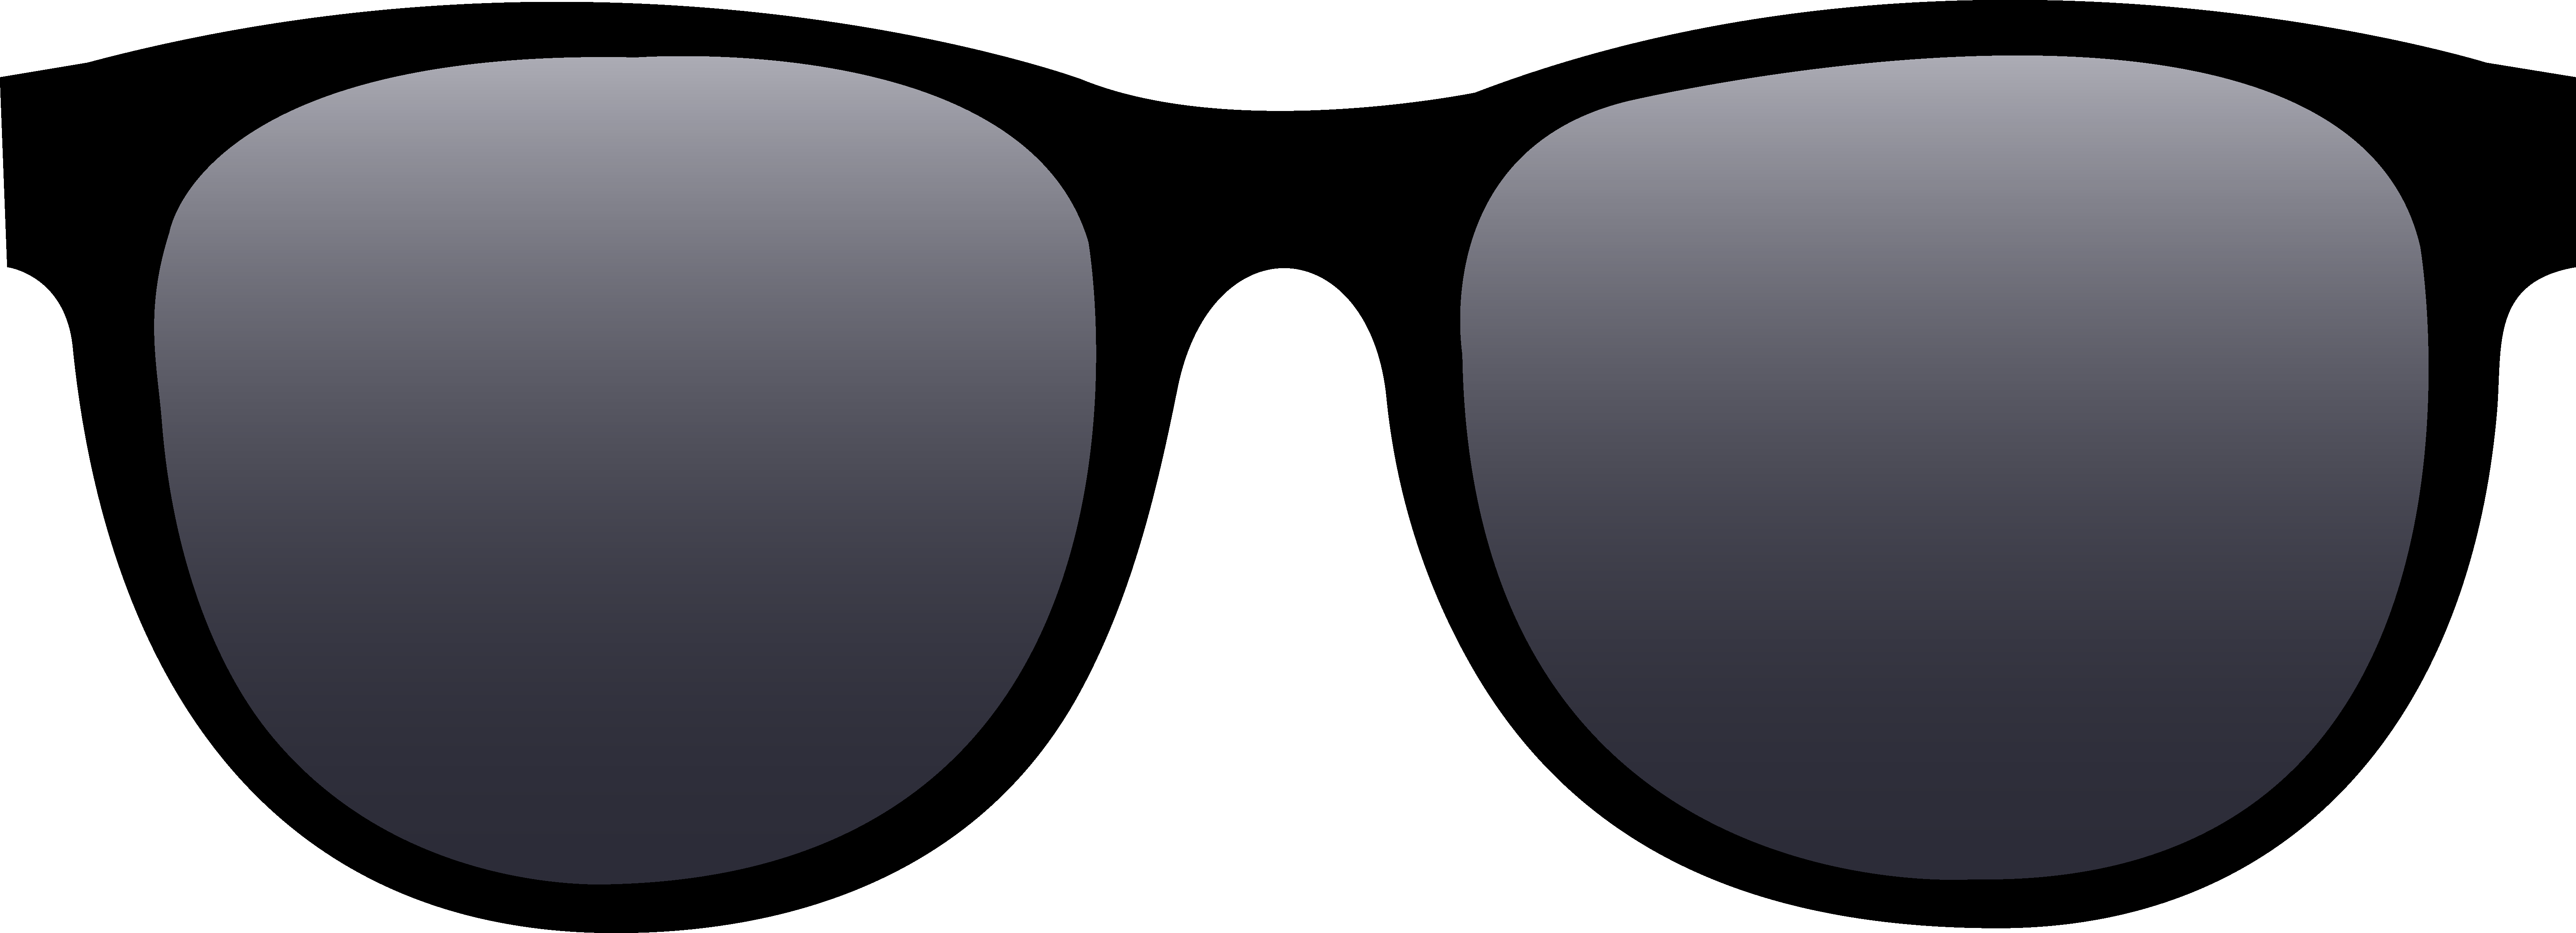 Sunglasses Vector Free